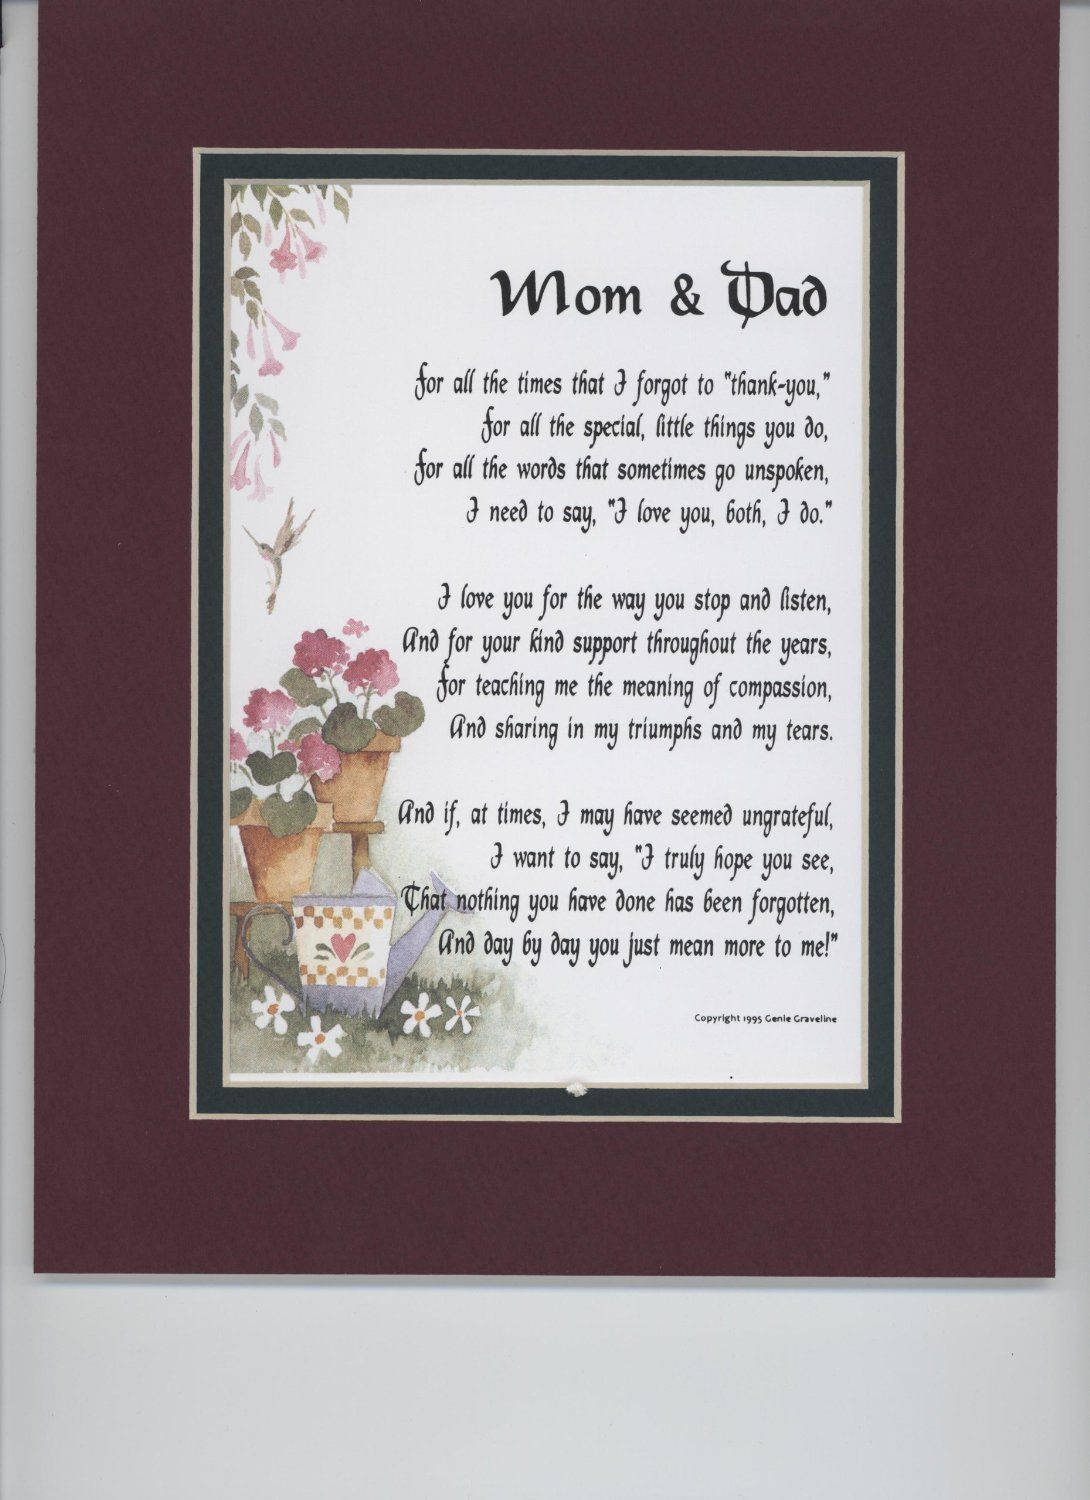 heavenly anniversary poems Special 30th Wedding